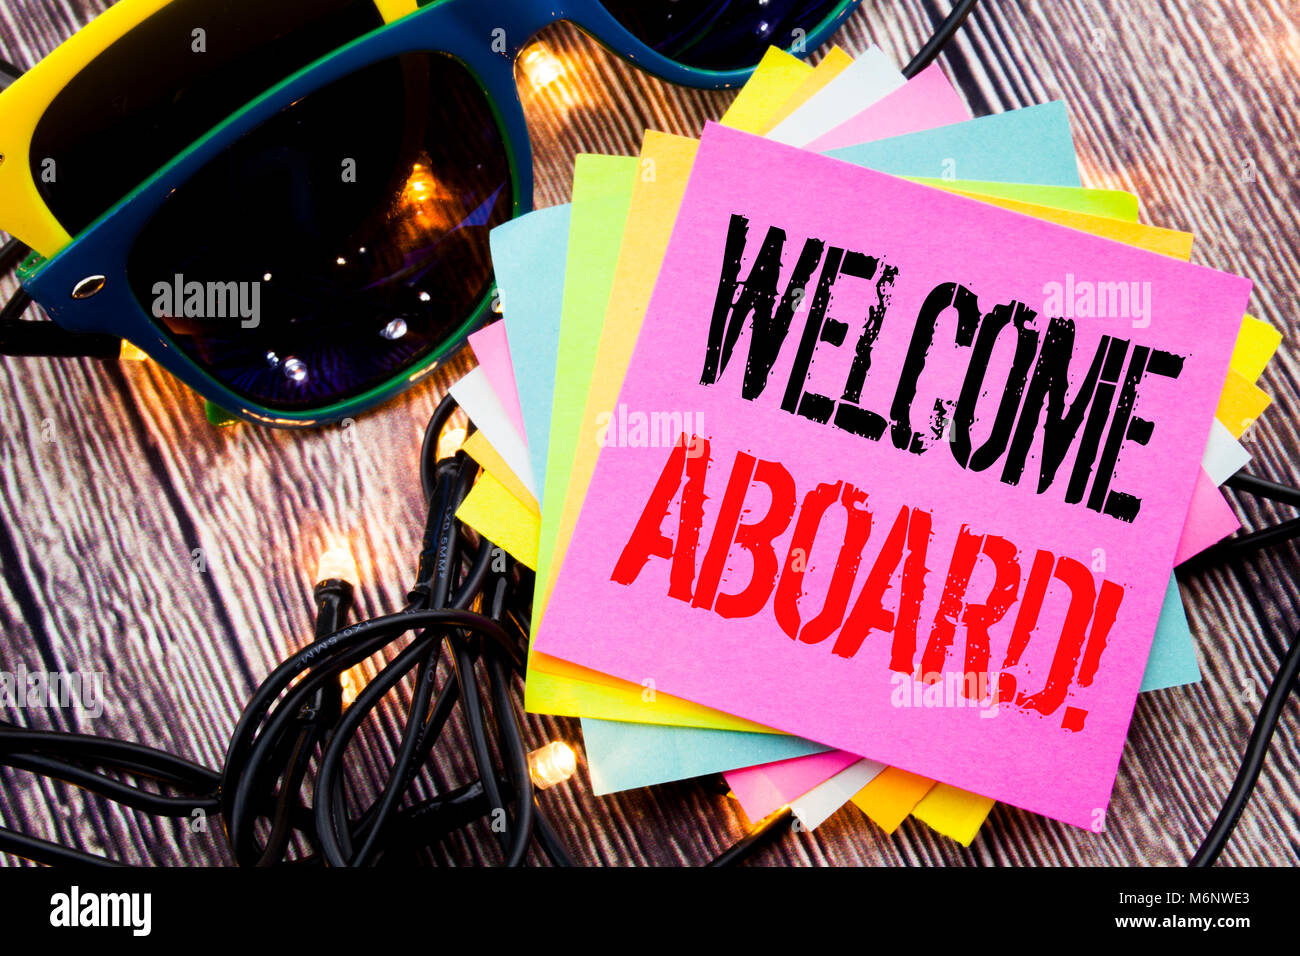 Welcome Aboard Stock Photos & Welcome Aboard Stock Images - Alamy